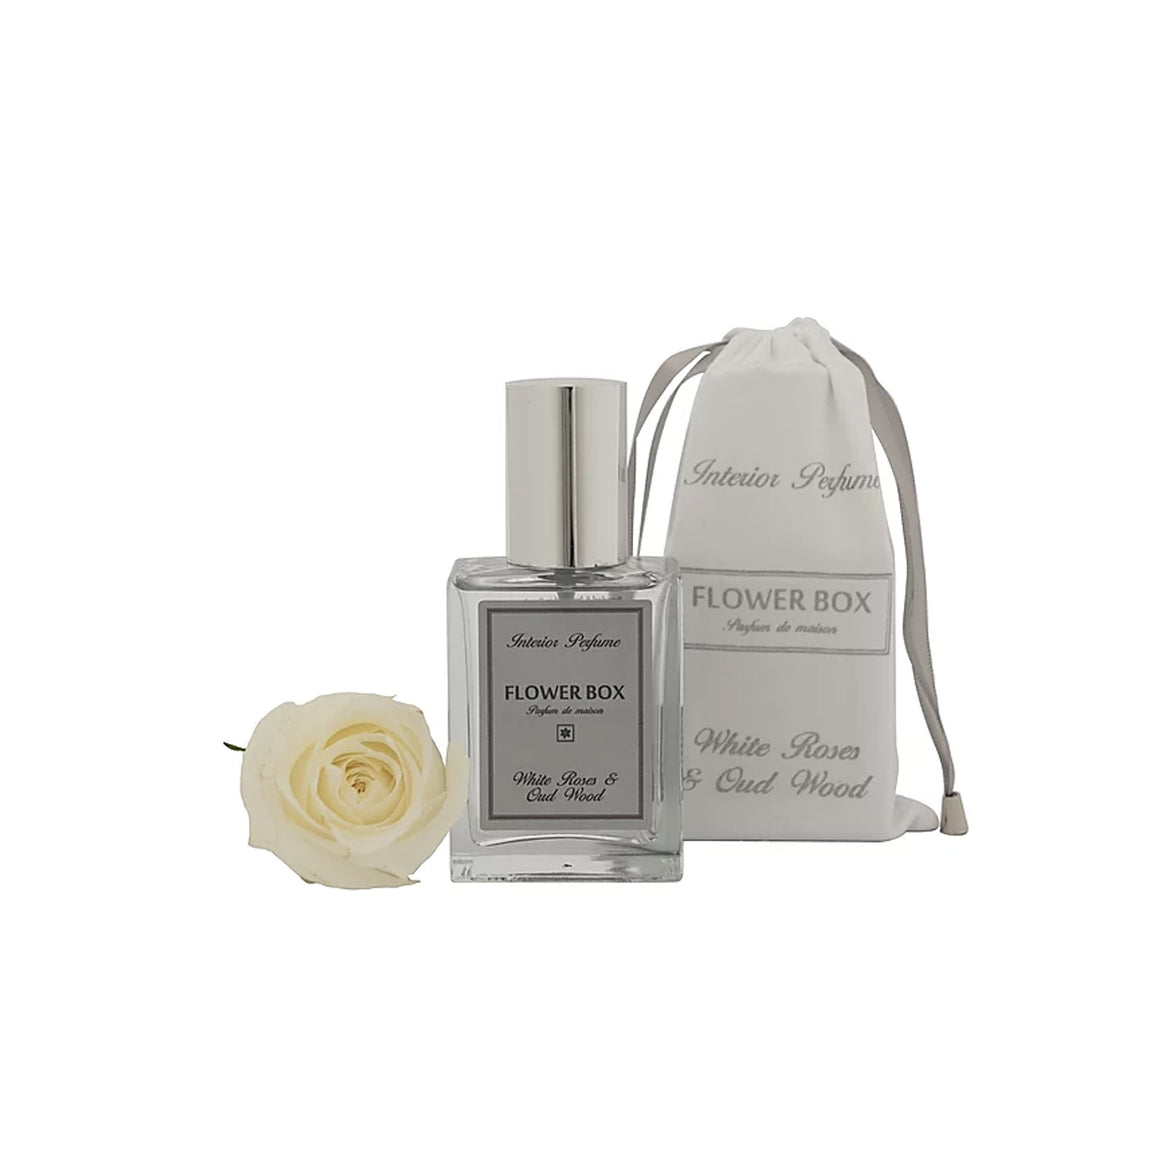 Flower Box - Interior Perfume White Rose